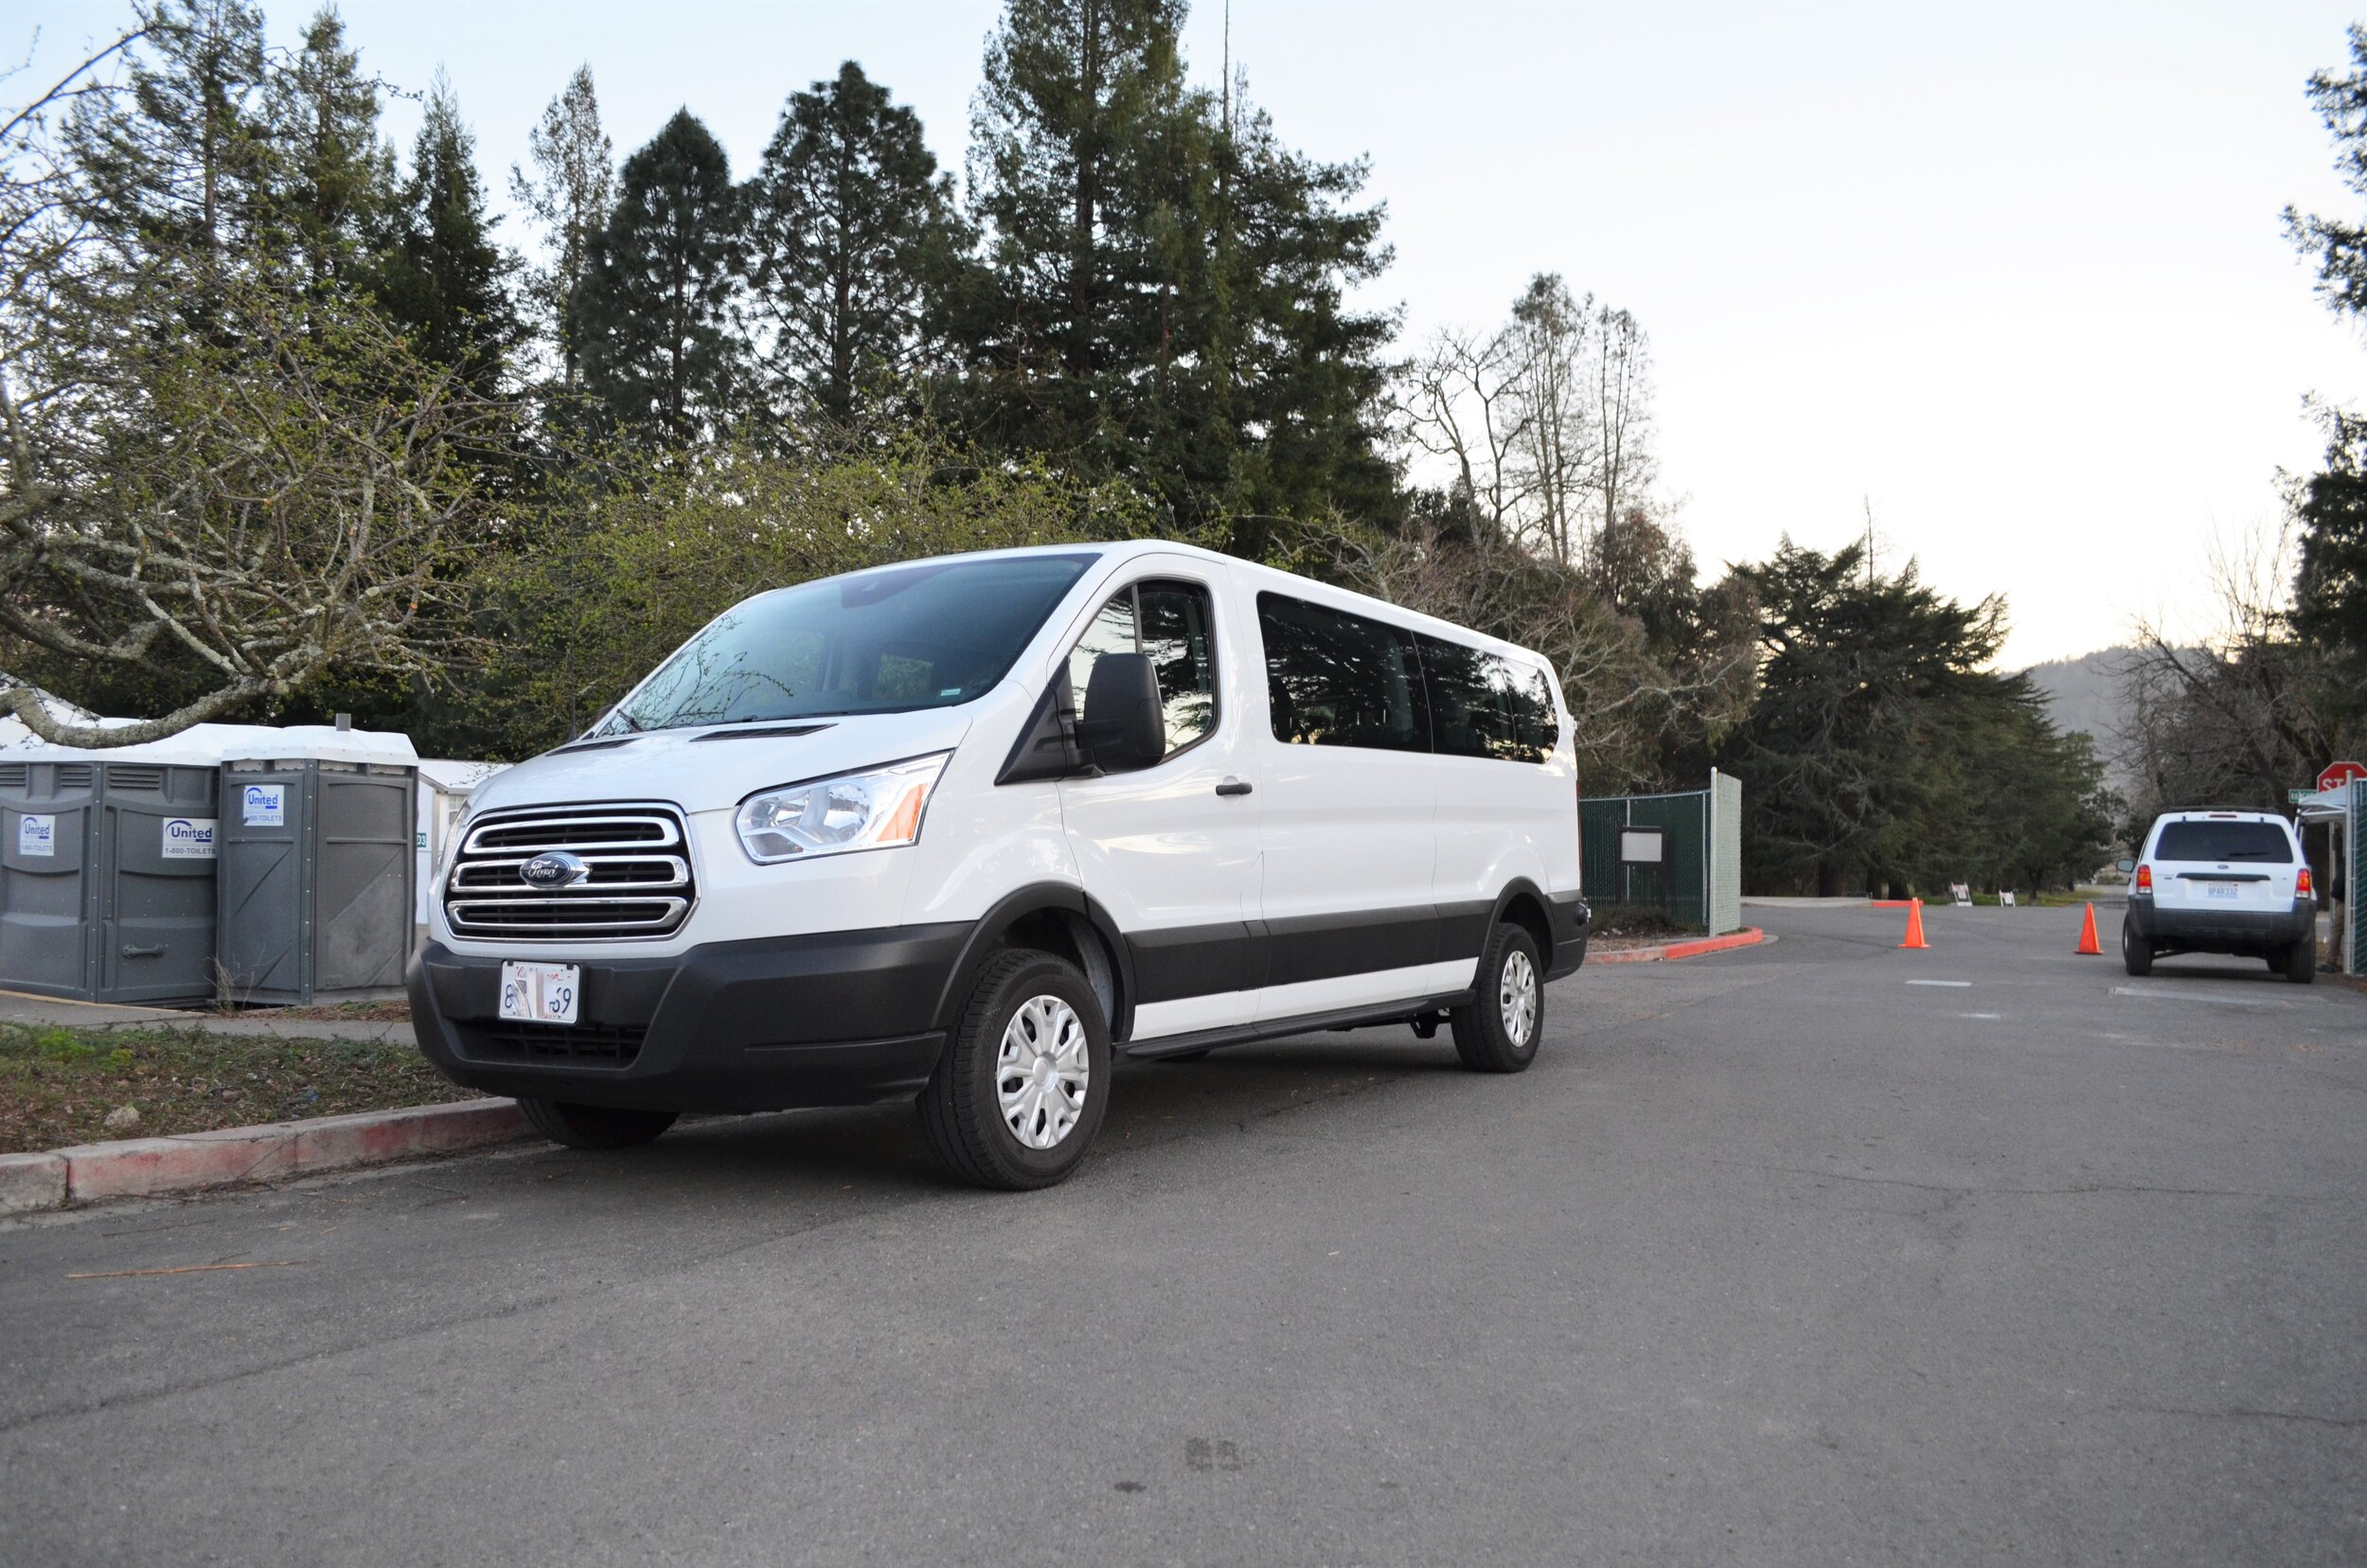 A shuttle service provides residents with a free ride into town throughout the day.